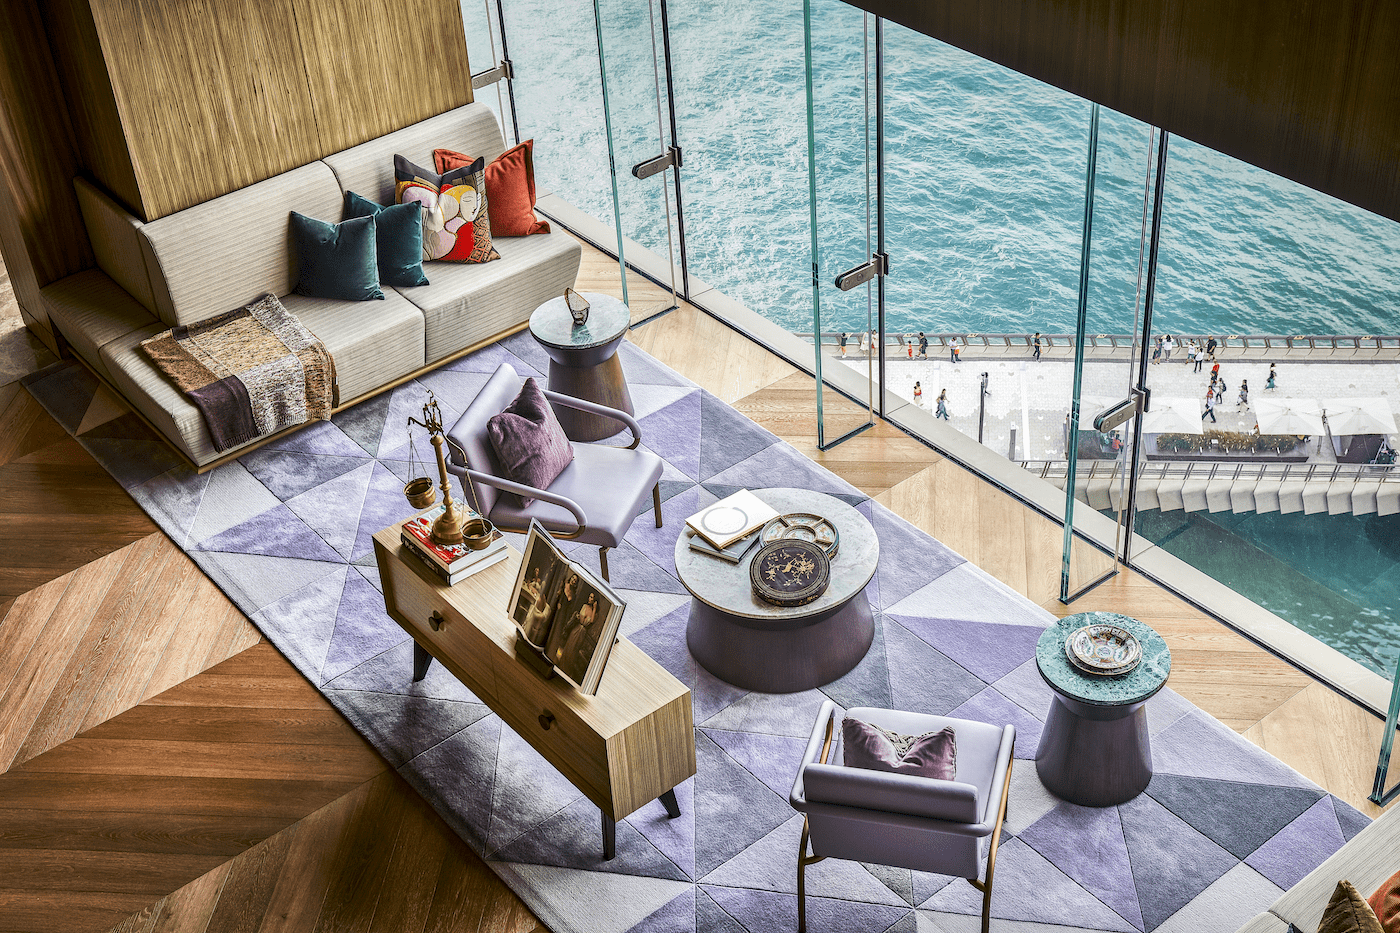 Win a Breezy Staycation by the Water thanks to K11 ARTUS, Hong Kong's most luxurious residence